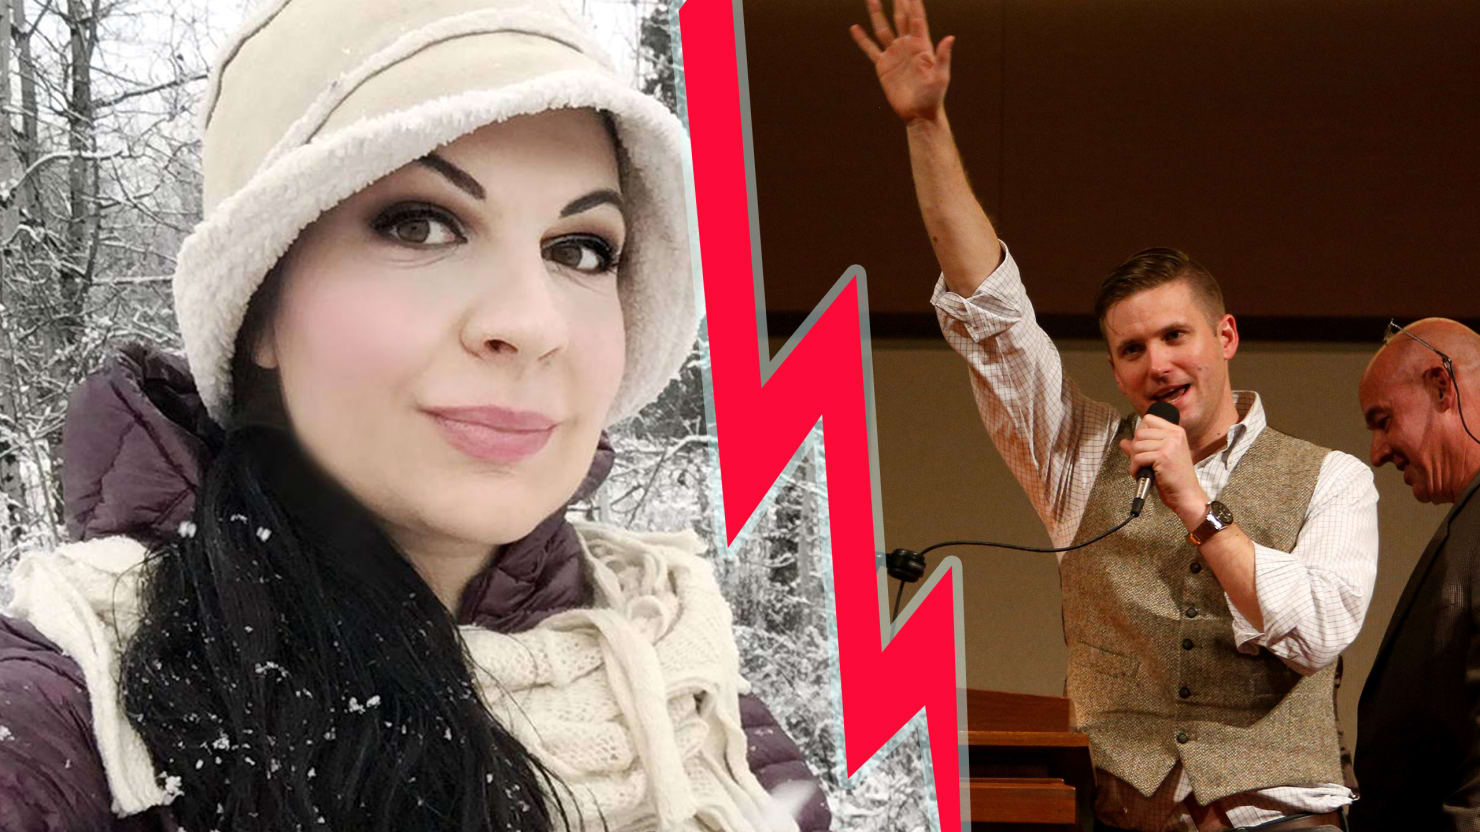 Meet the Moscow Mouthpiece Married to a Racist Alt-Right Boss